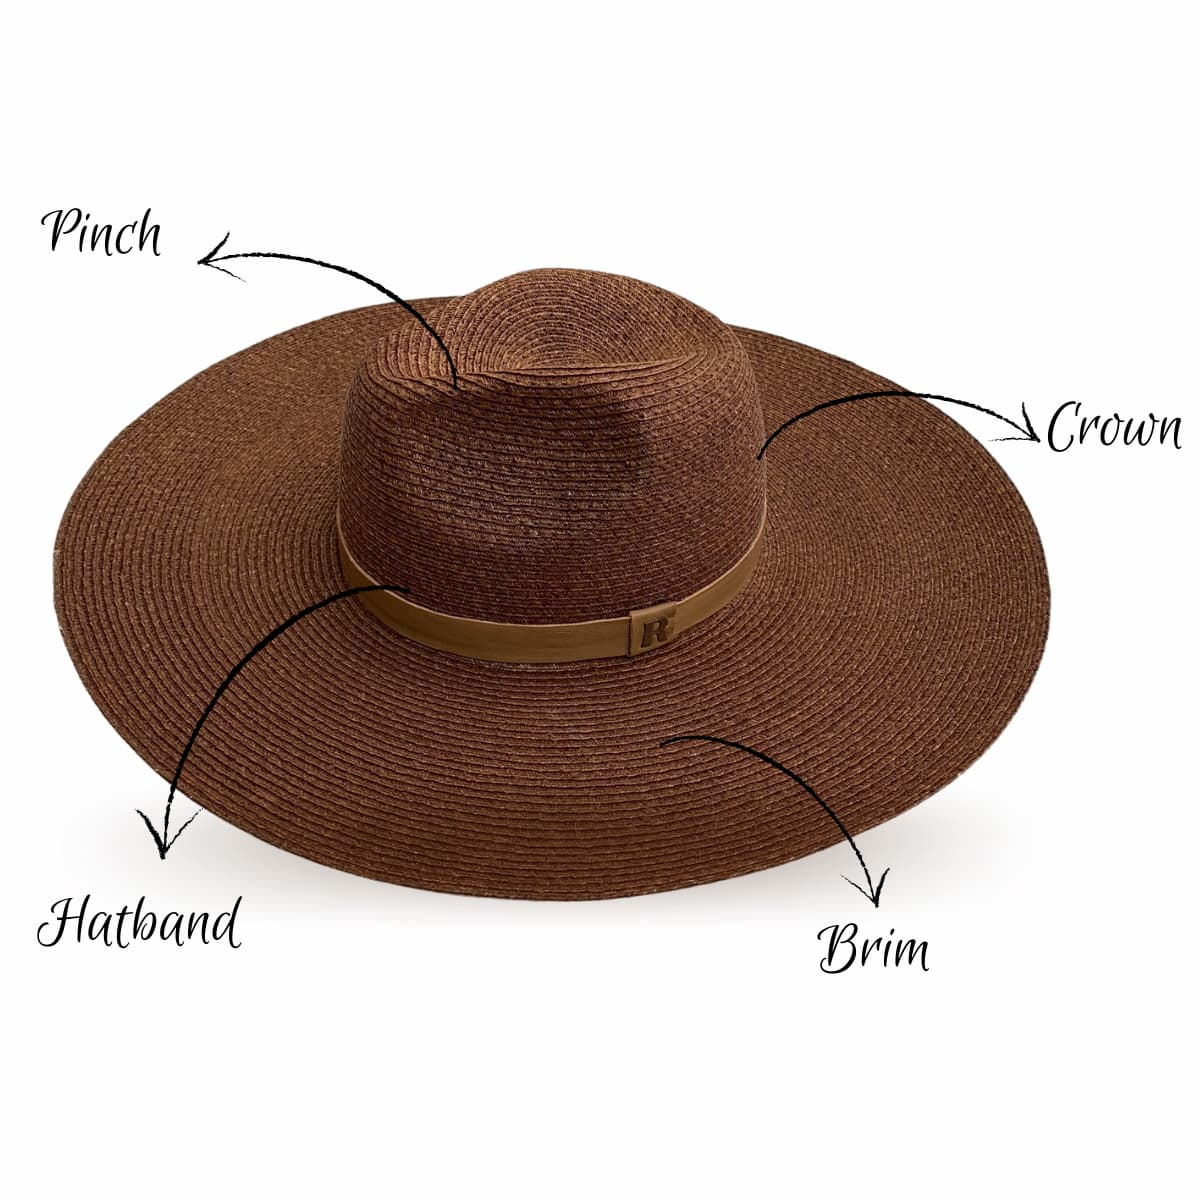 How to take care of your straw hat?